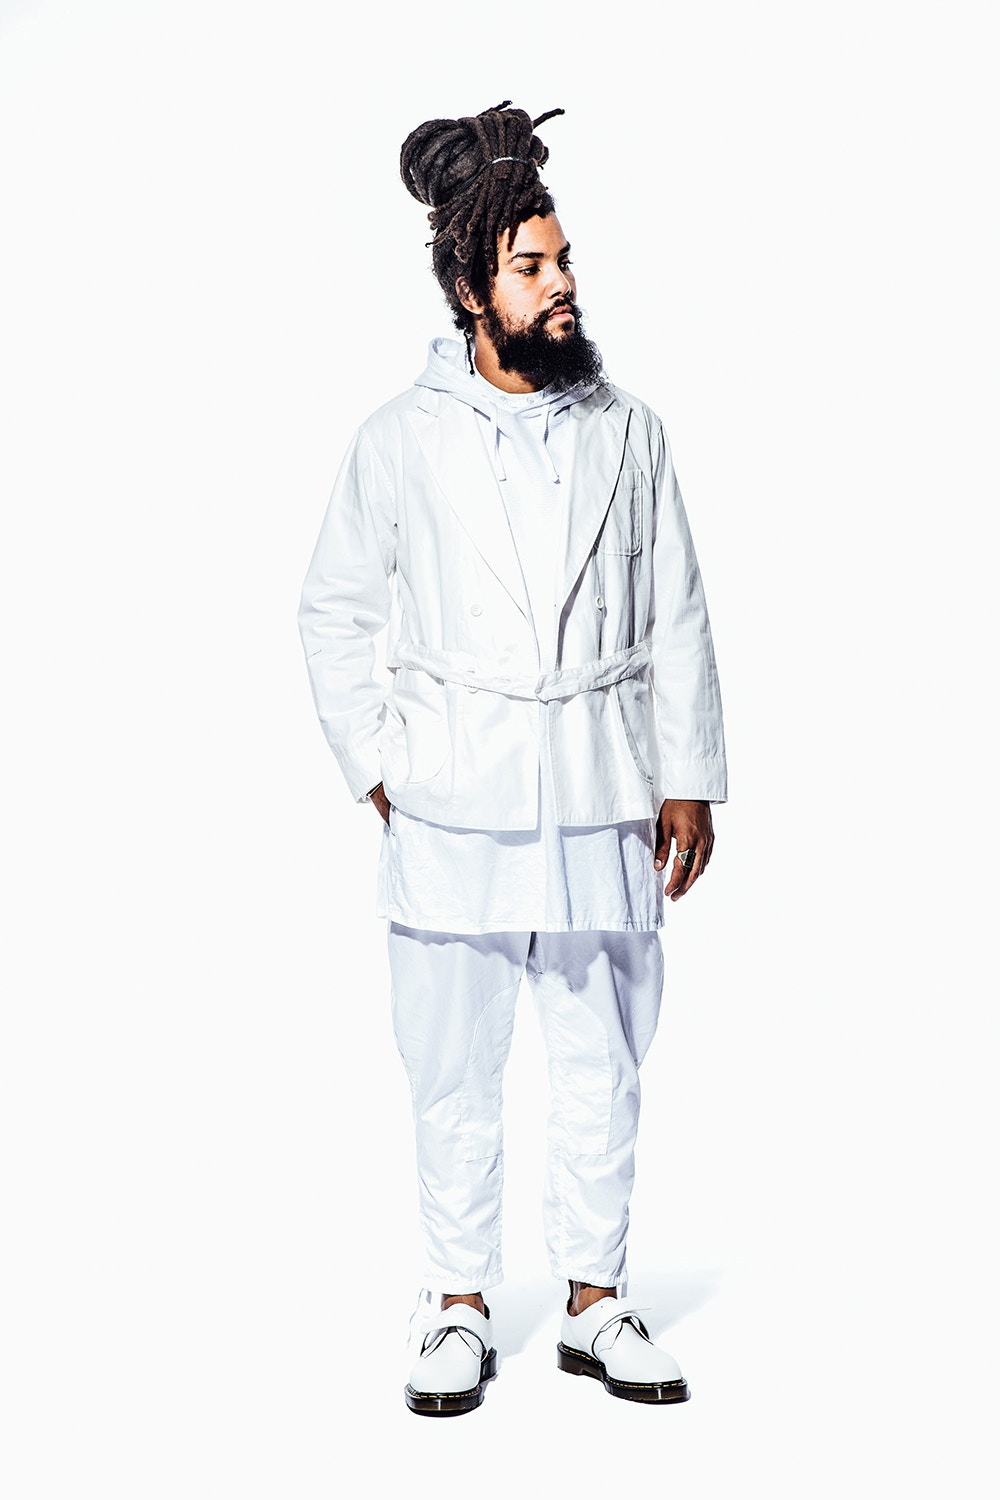 http-%2F%2Fhypebeast.com%2Fimage%2F2017%2F07%2FEngineered-Garments-Spring-2018-42.jpg